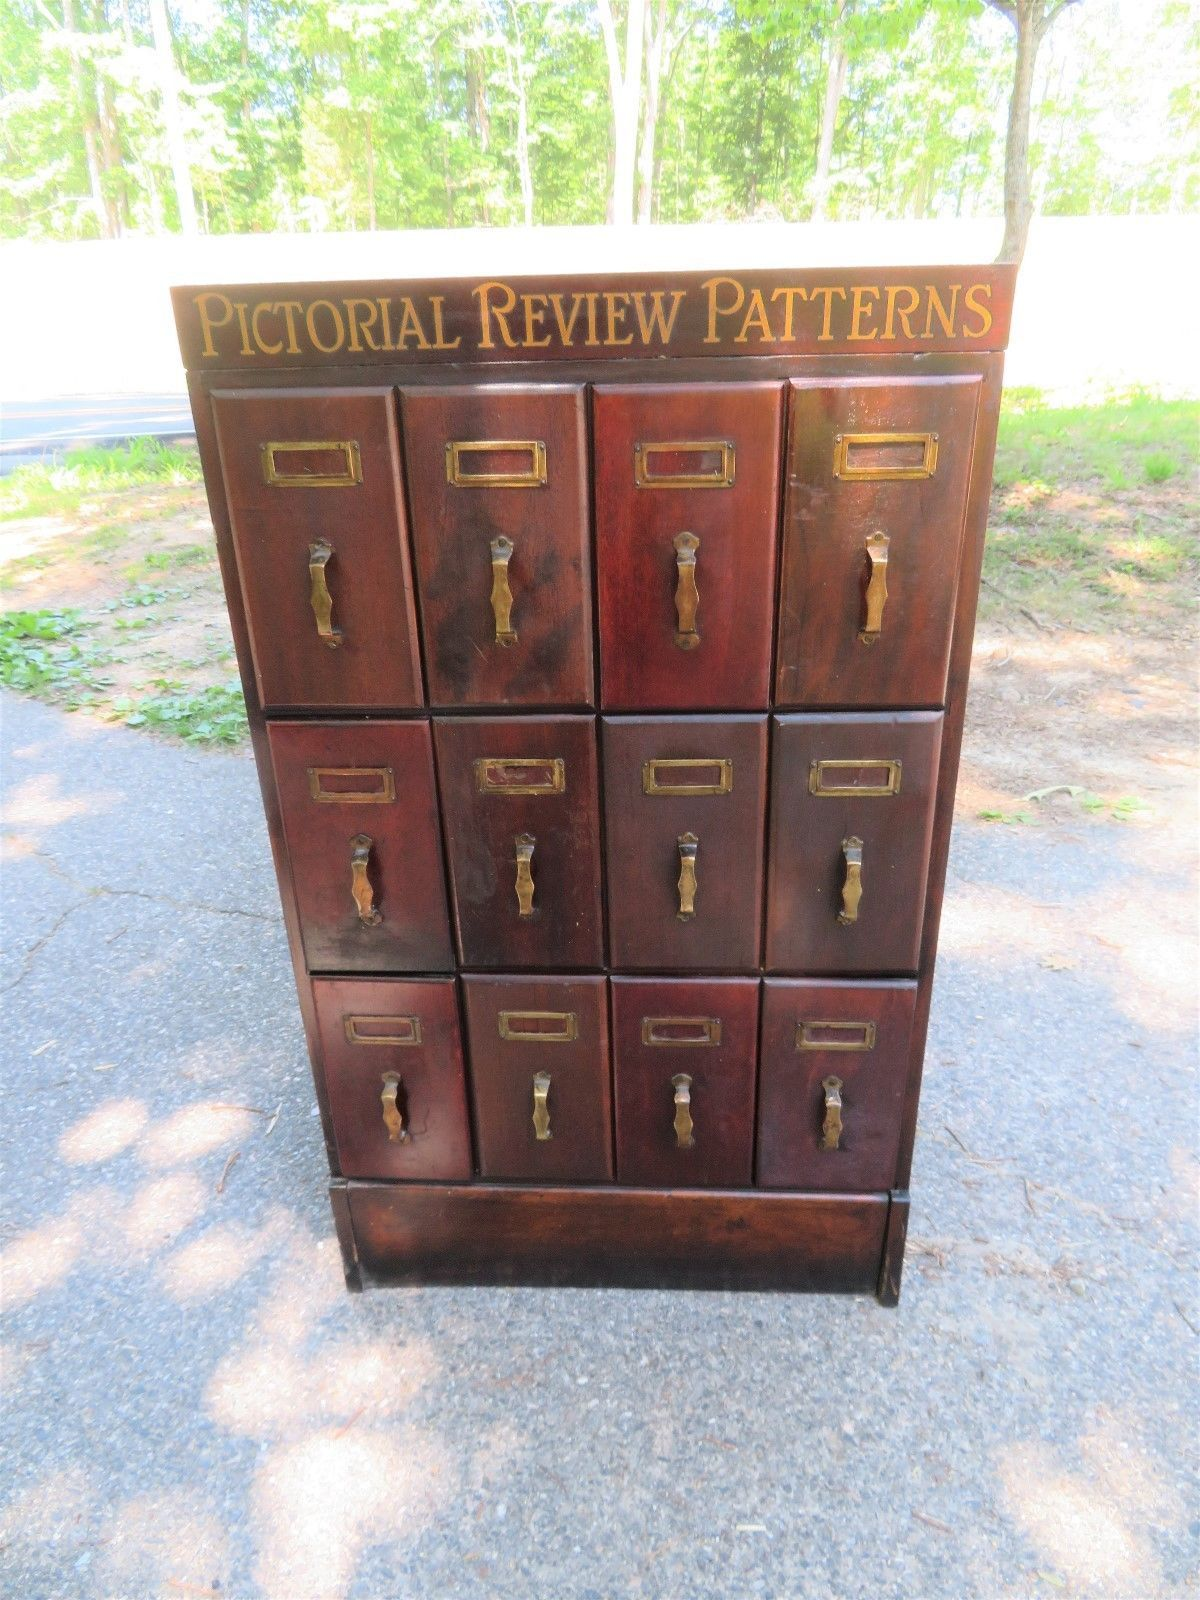 Antique Vintage Pictorial Sewing Patterns Advertising Wood Filing File Cabinet Ebay